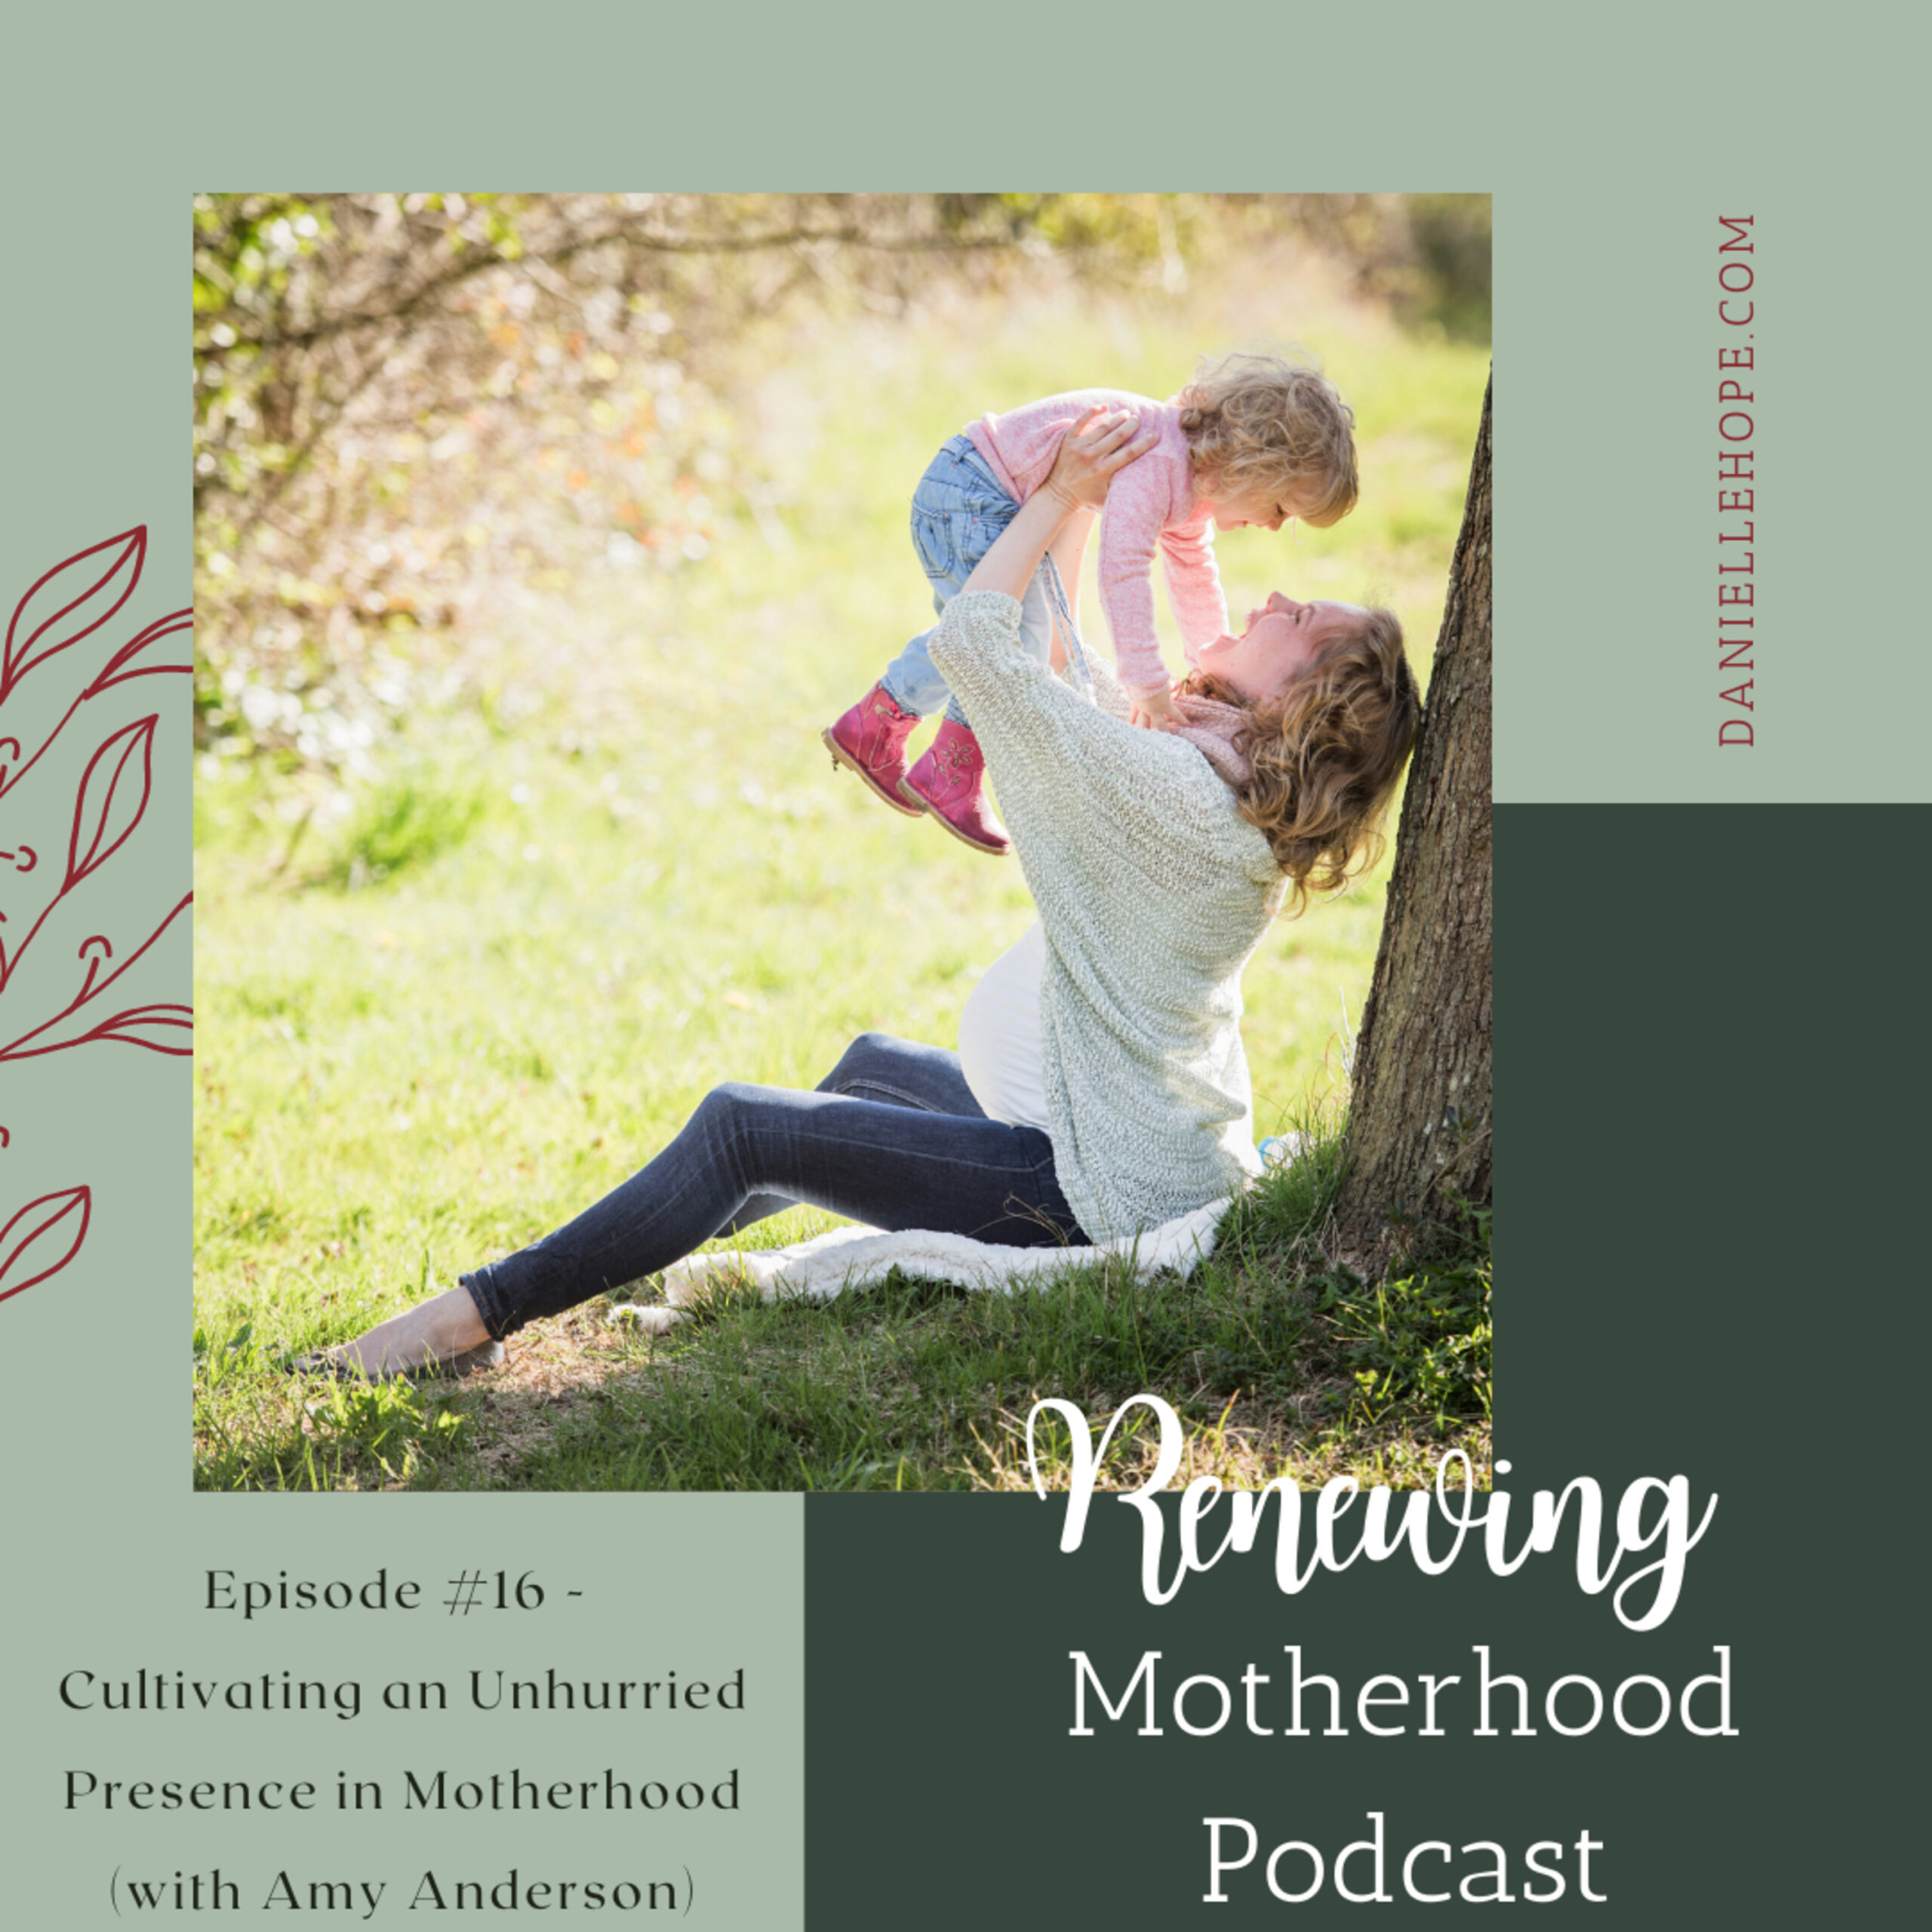 RM #16 Cultivating an Unhurried Presence In Motherhood (with Amy Anderson)